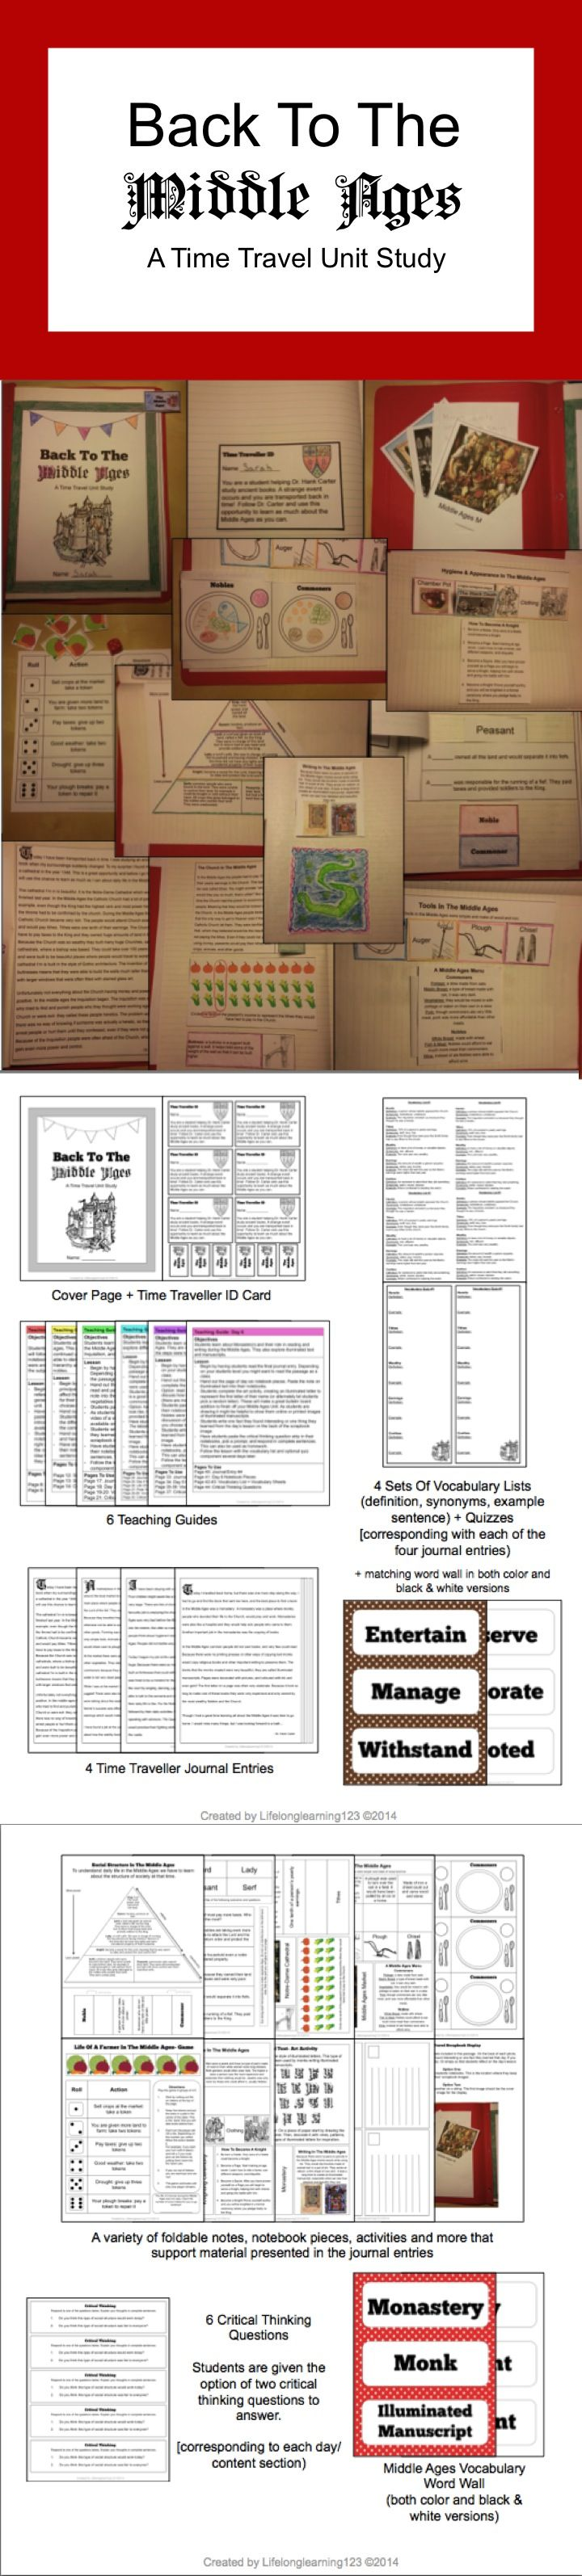 This unit provides a general overview of daily life in the Middle Ages in an engaging way that presents the information as a fun narrative. Students are transported back in time to the Middle Ages and produce a hands-on notebook with interactive components. They follow the diary entries of a professor, creating crafts, foldable notes, and other activities for each entry and topic.